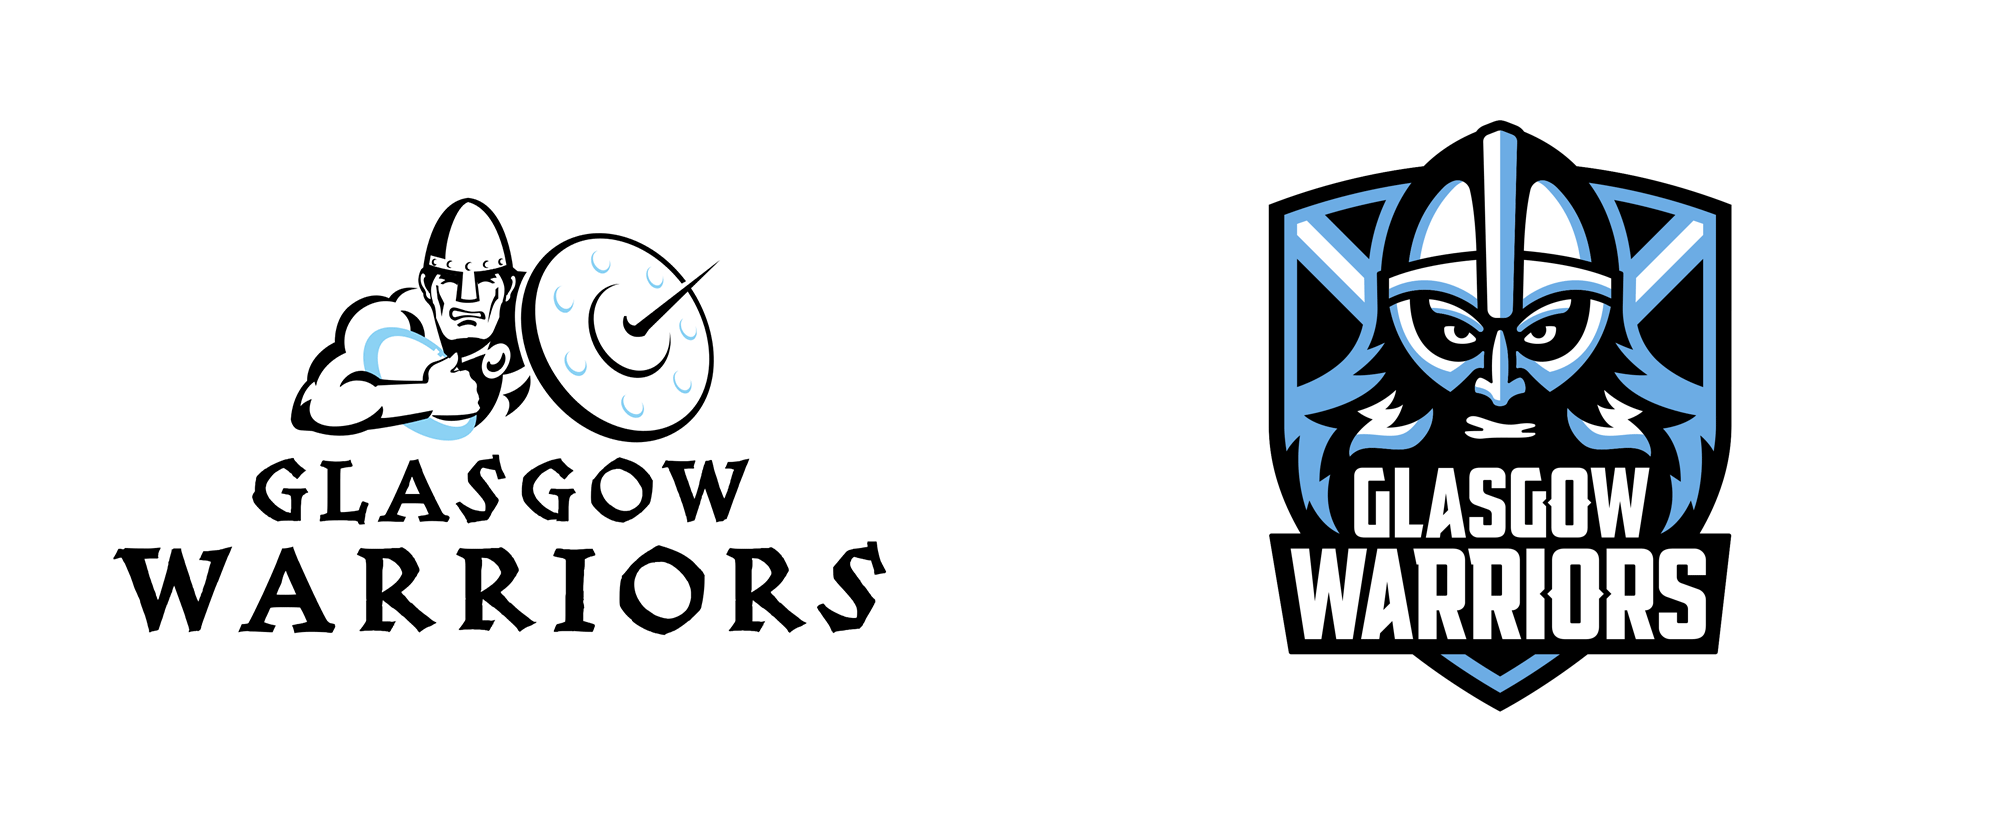 New Logo for Glasgow Warriors